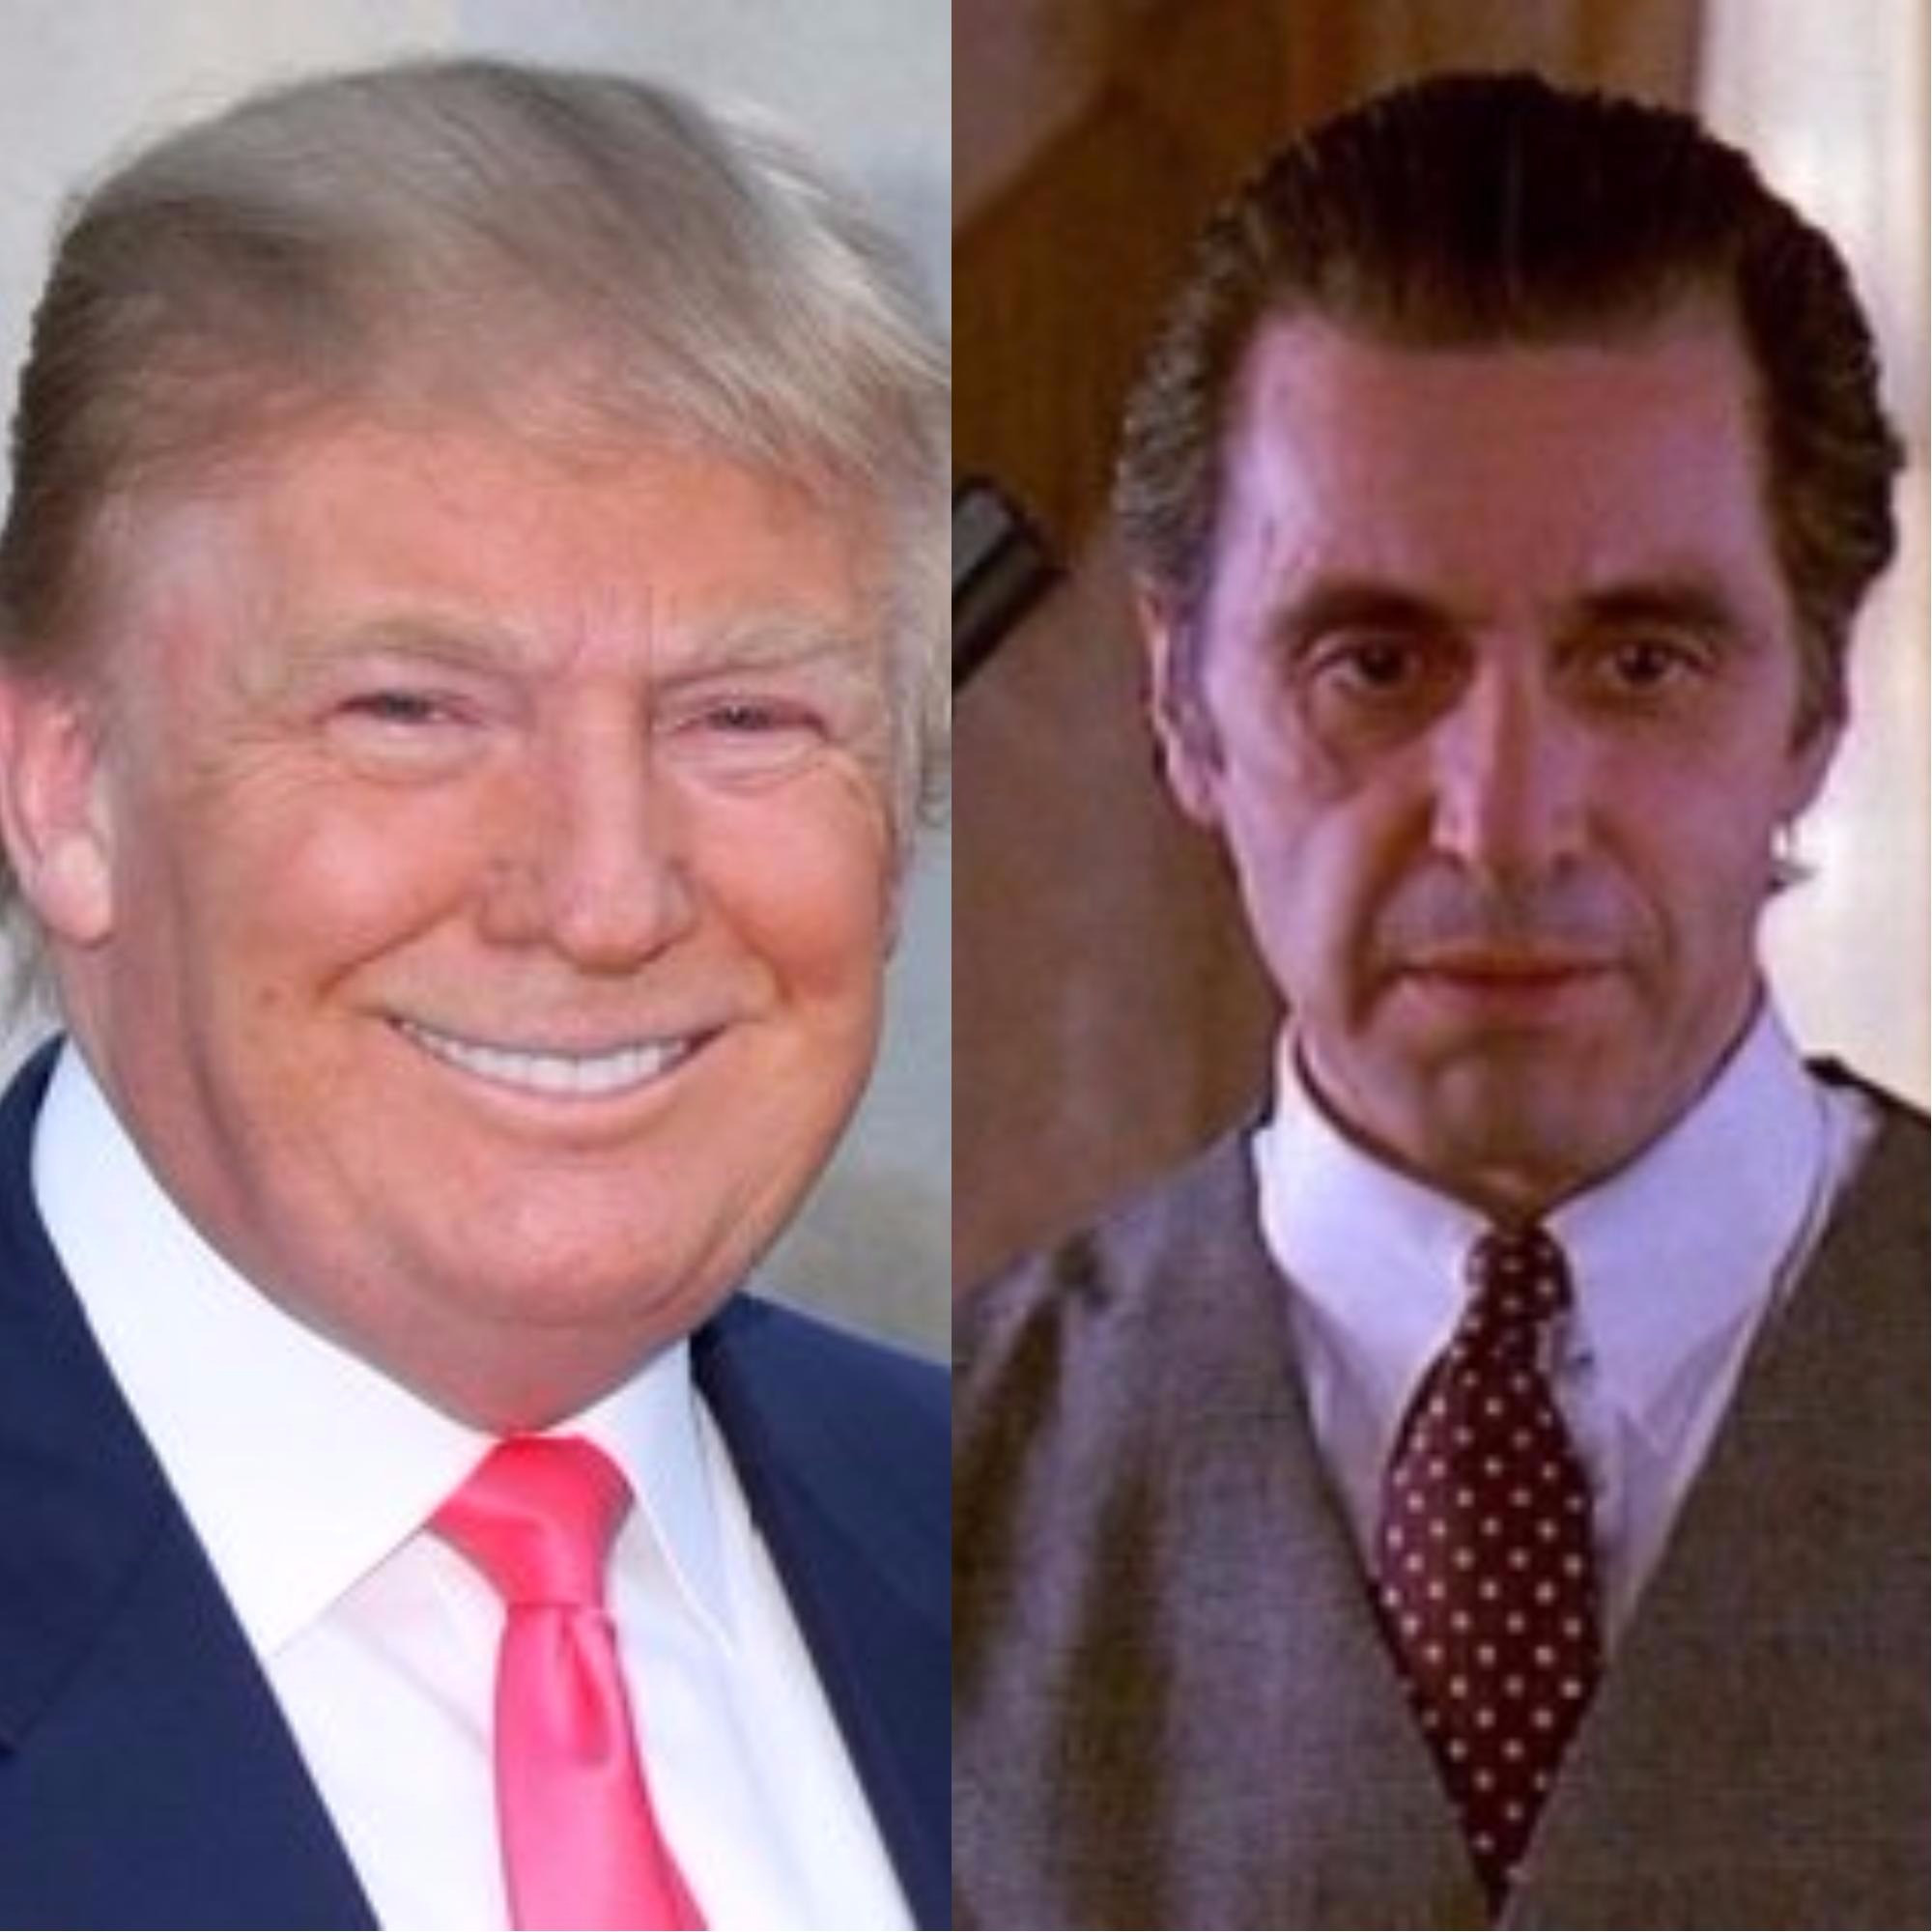 Scent Of A Woman 1992 Martin Brest: Trump Was Cut From An Al Pacino Film After Demanding Role